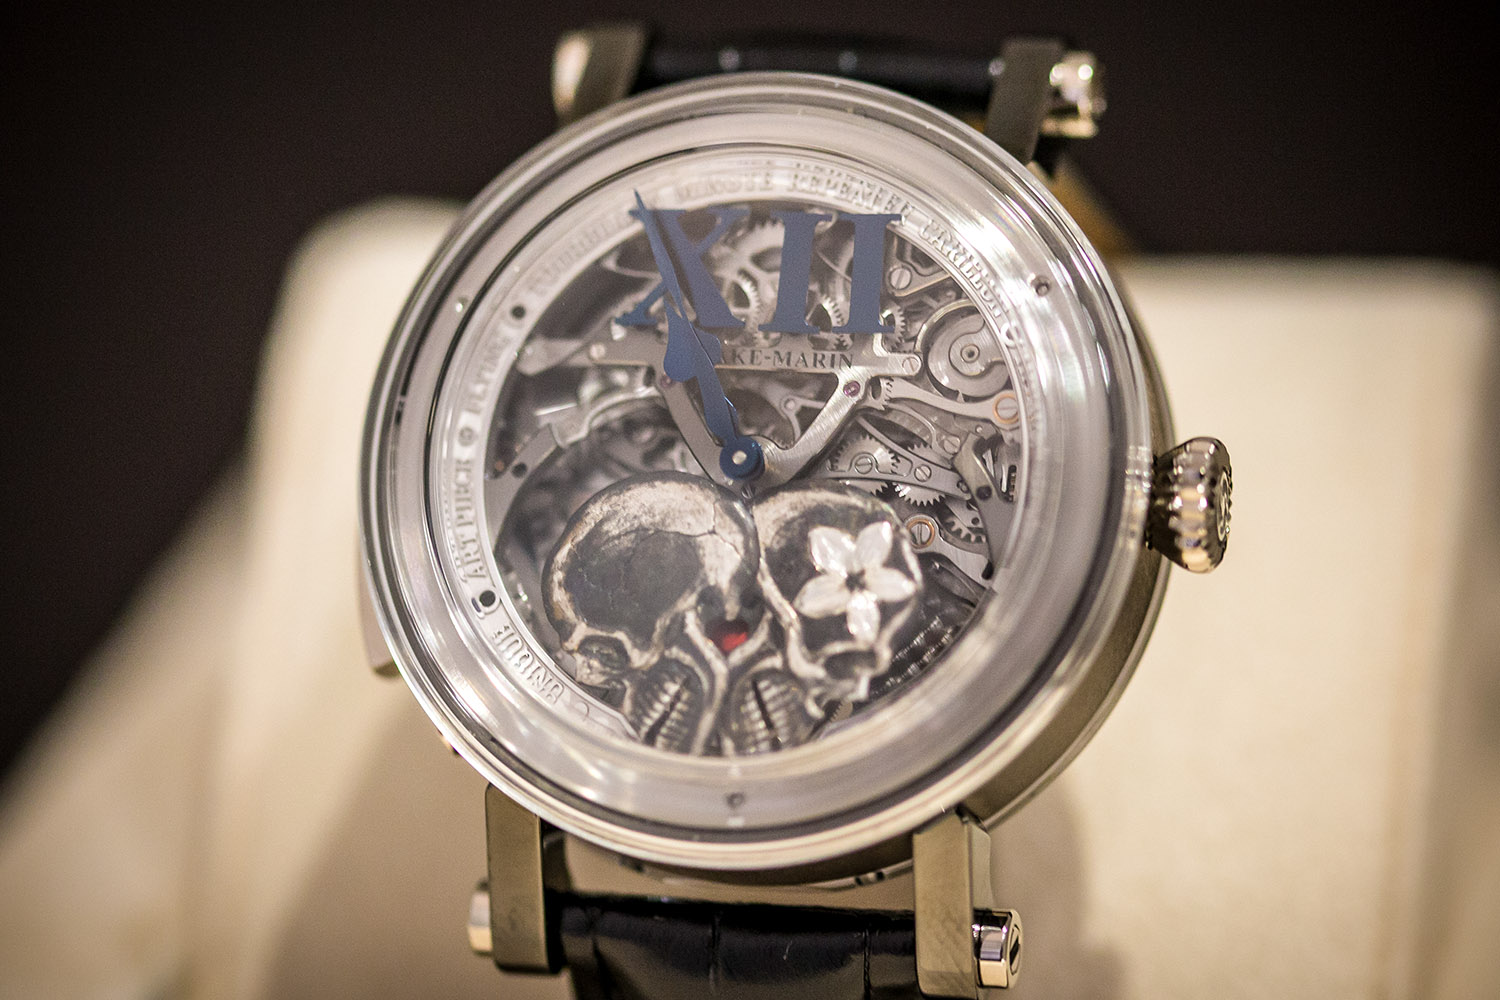 Speake-Marin - Crazy Sculls